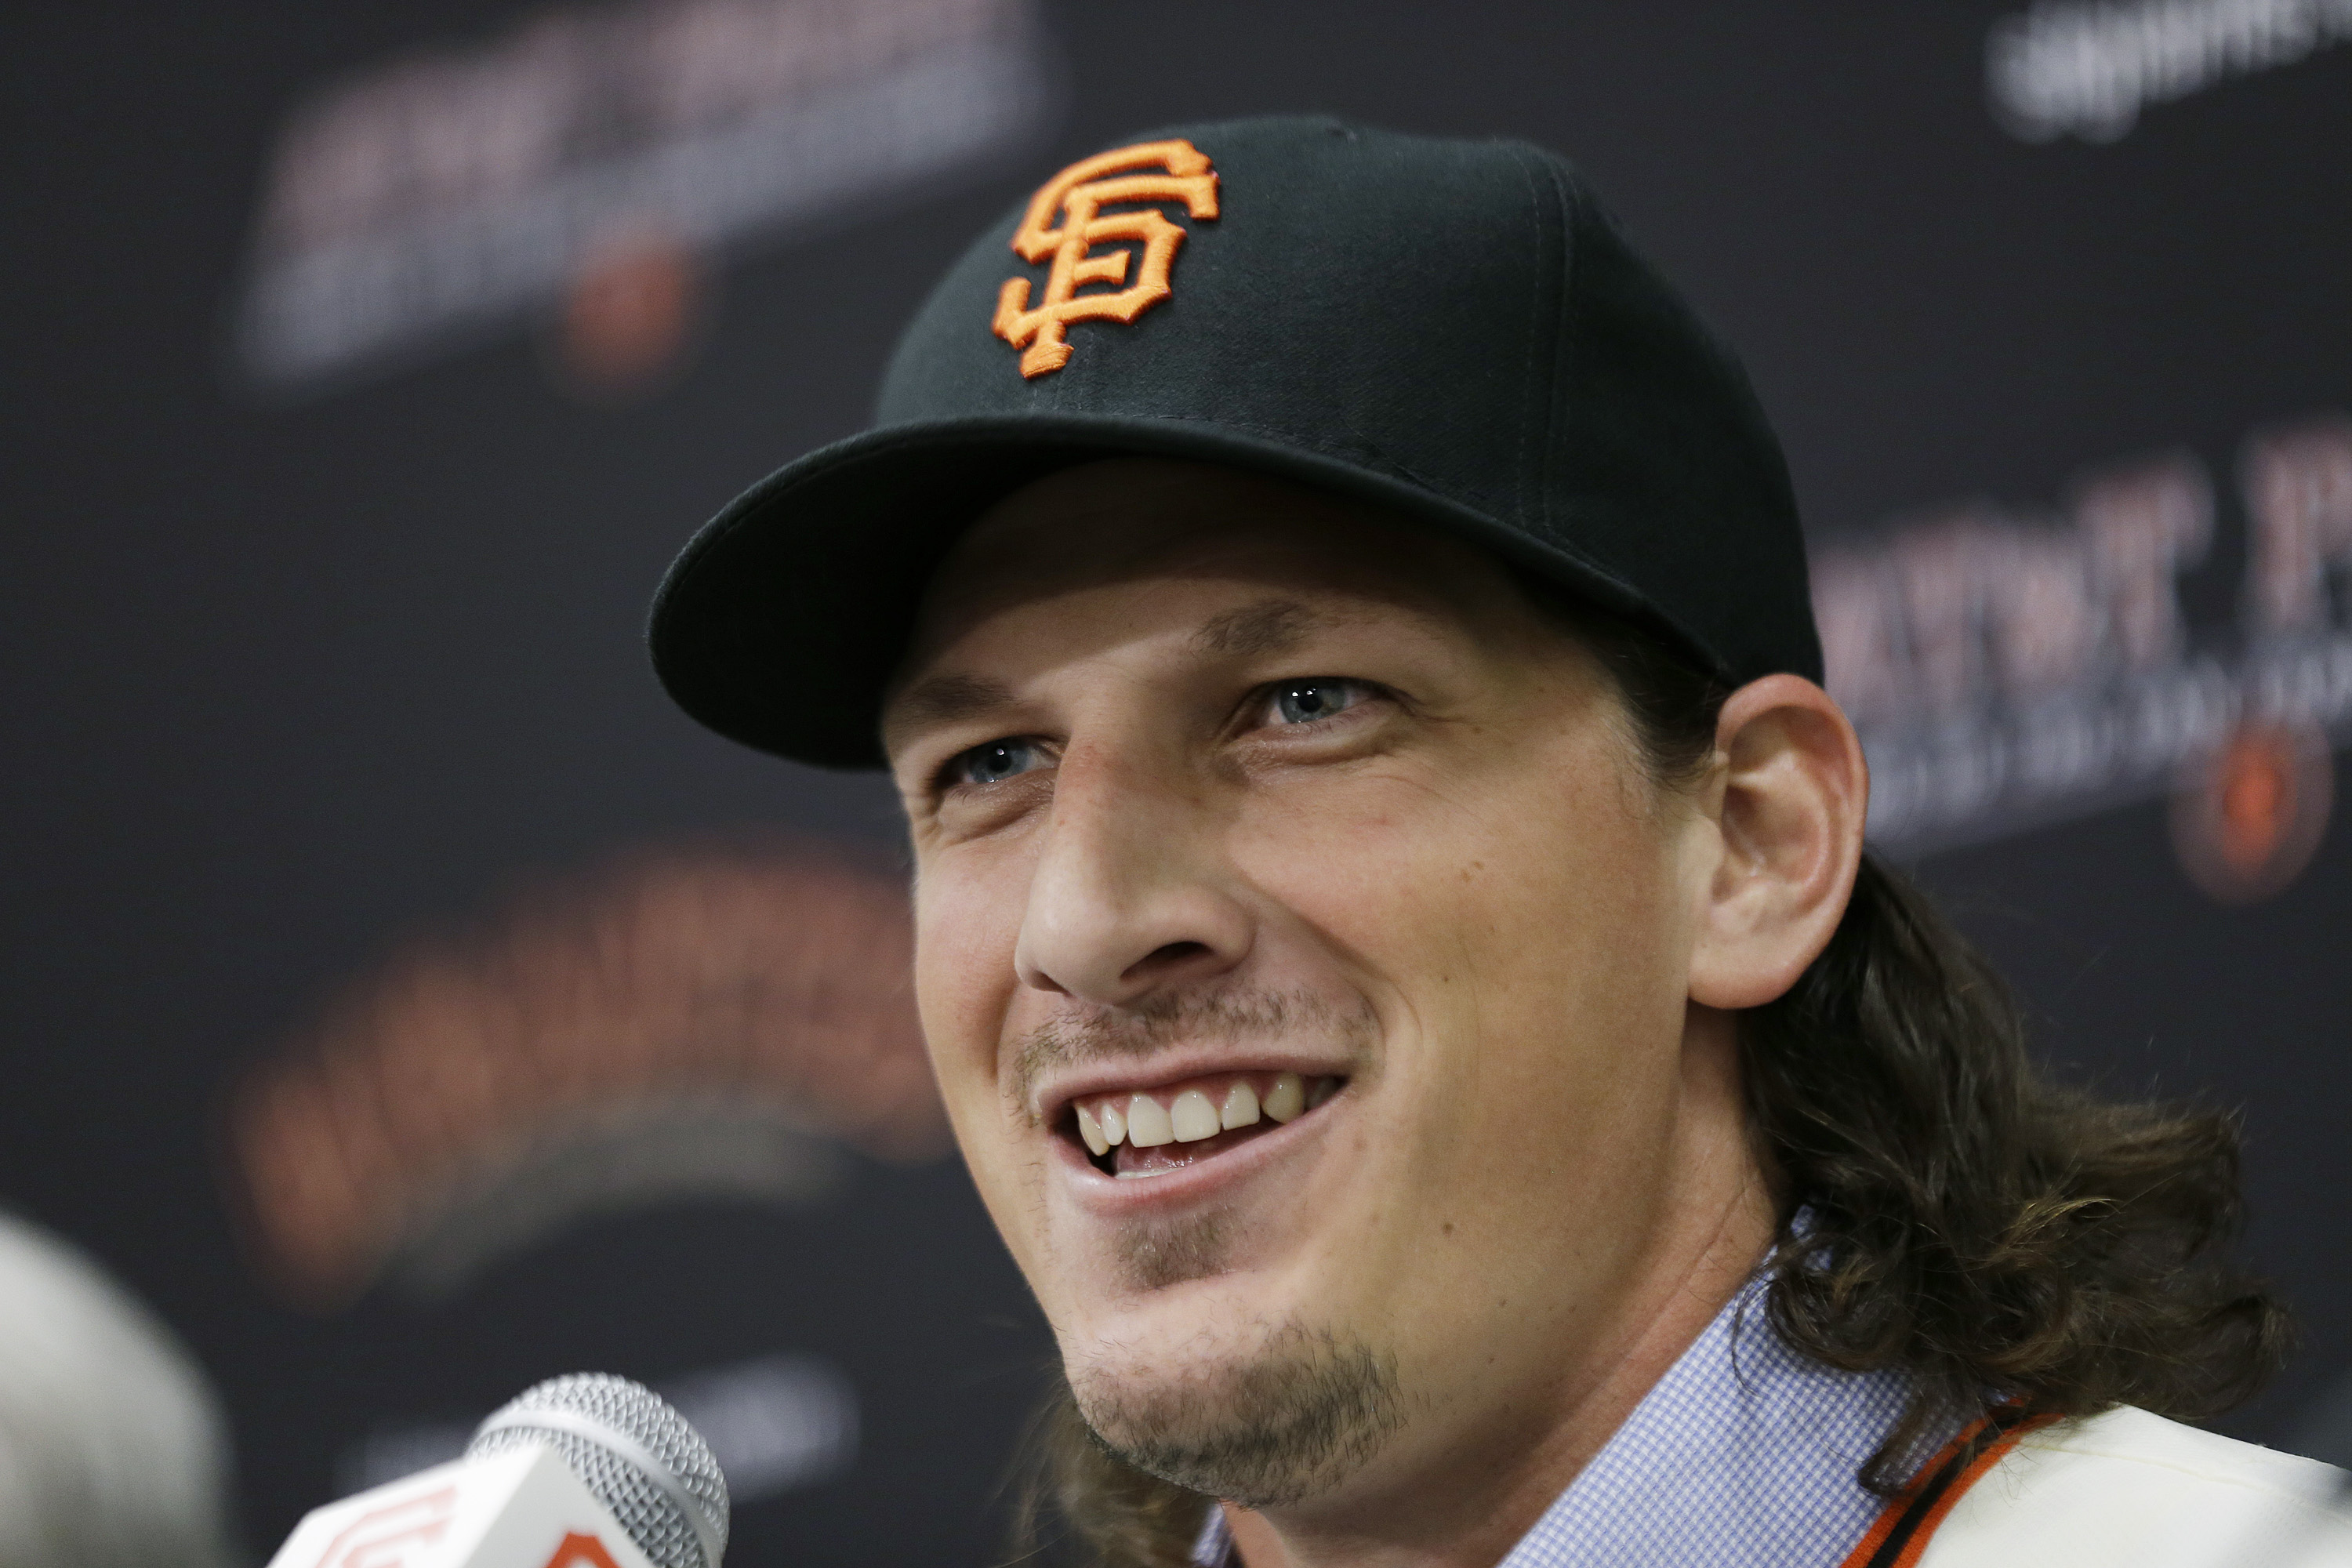 San Francisco Giants pitcher Jeff Samardzija smiles during a news conference Friday, Dec. 11, 2015, in San Francisco. The Giants introduced right-hander Samardzija, who signed a $90 million, five-year deal. (AP Photo/Eric Risberg)